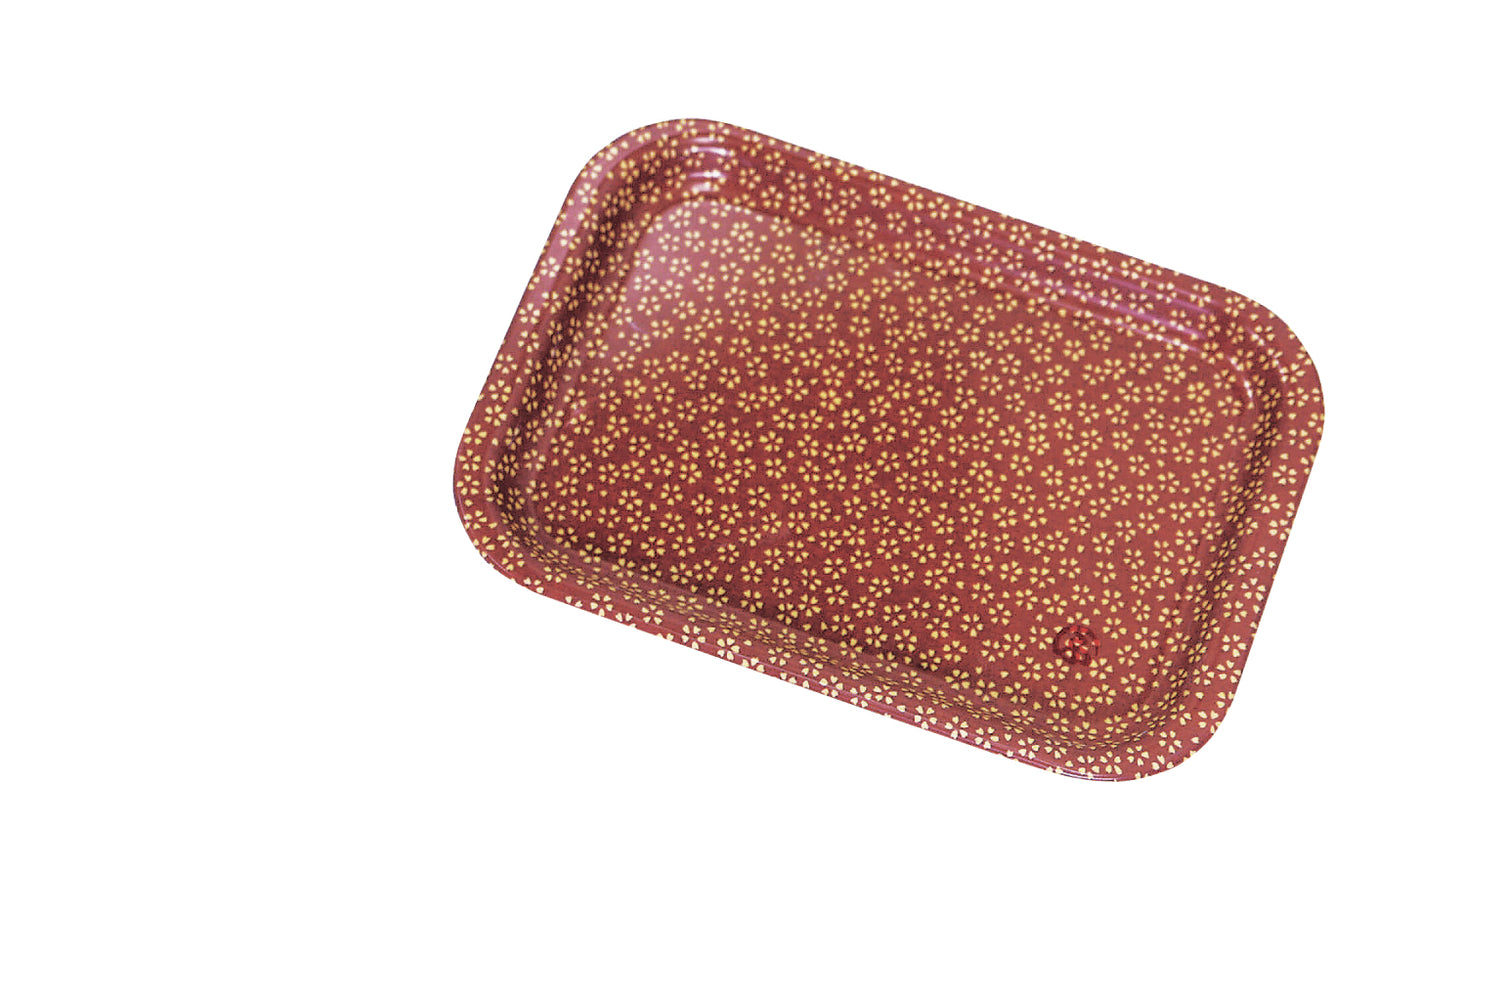 Wafu Cloth Cafe Tray | Sakura Blossom by Hakoya - Bento&co Japanese Bento Lunch Boxes and Kitchenware Specialists